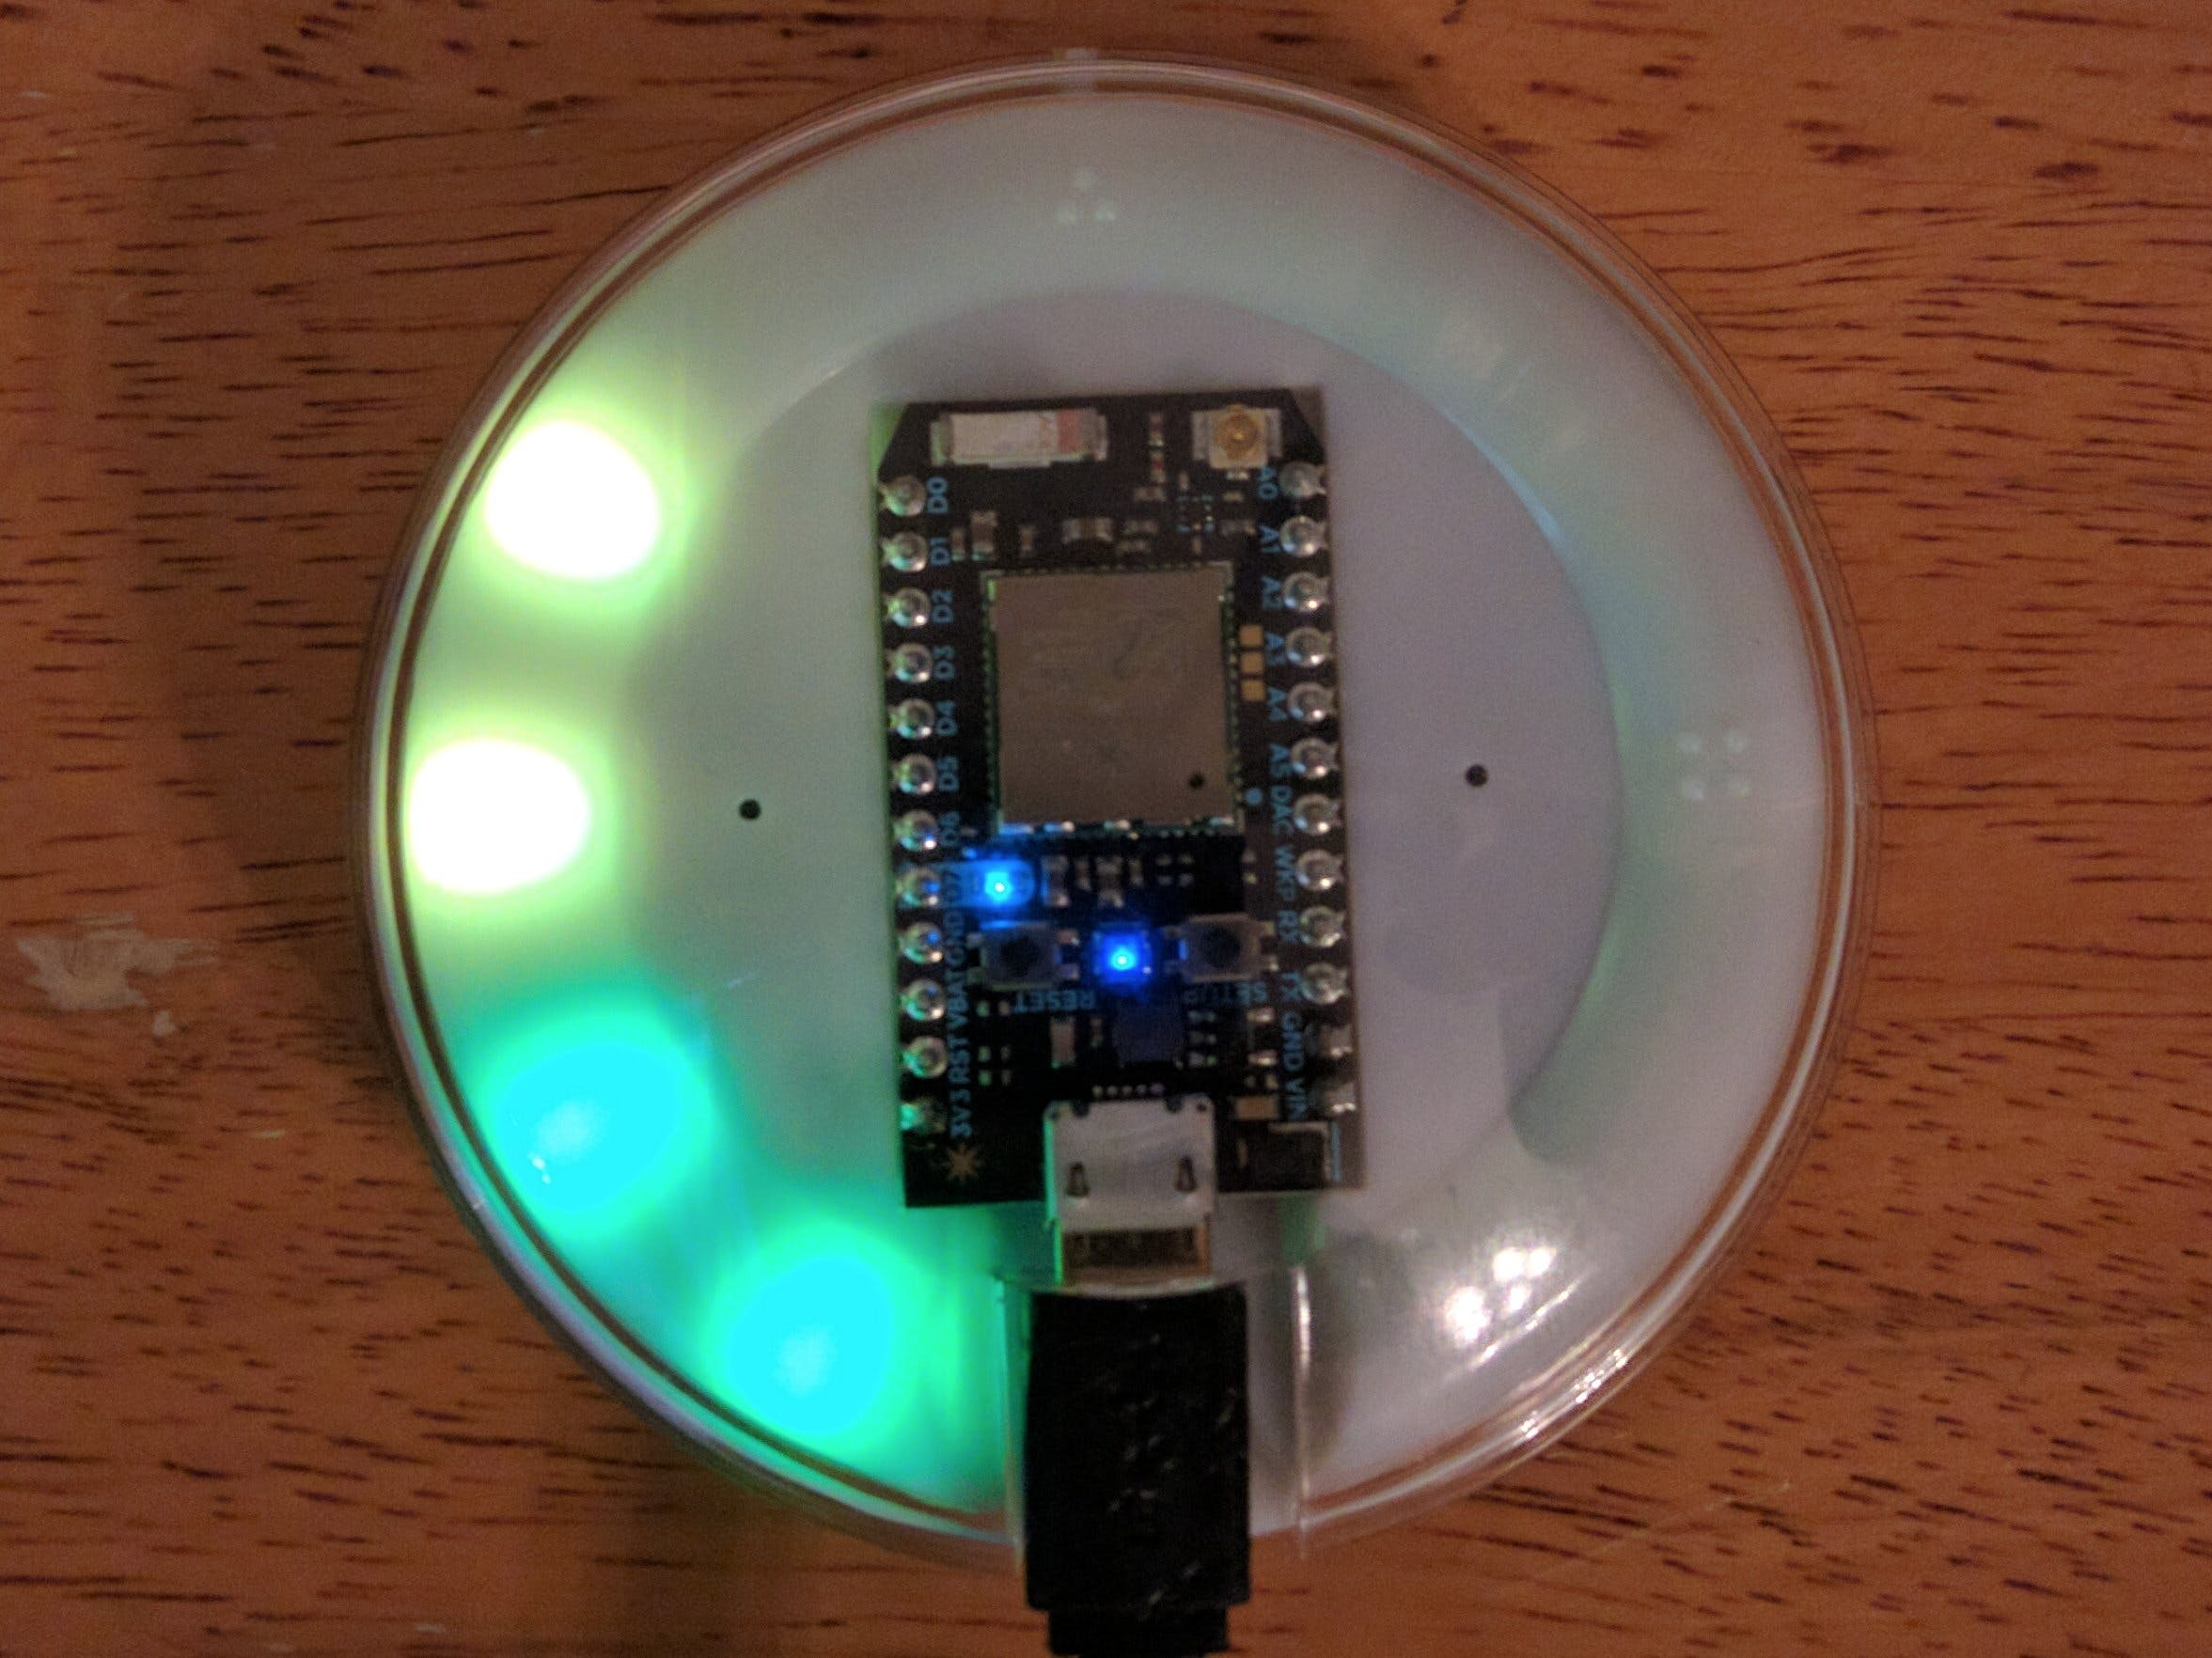 Air Quality Index Monitoring with Photon Internet Button